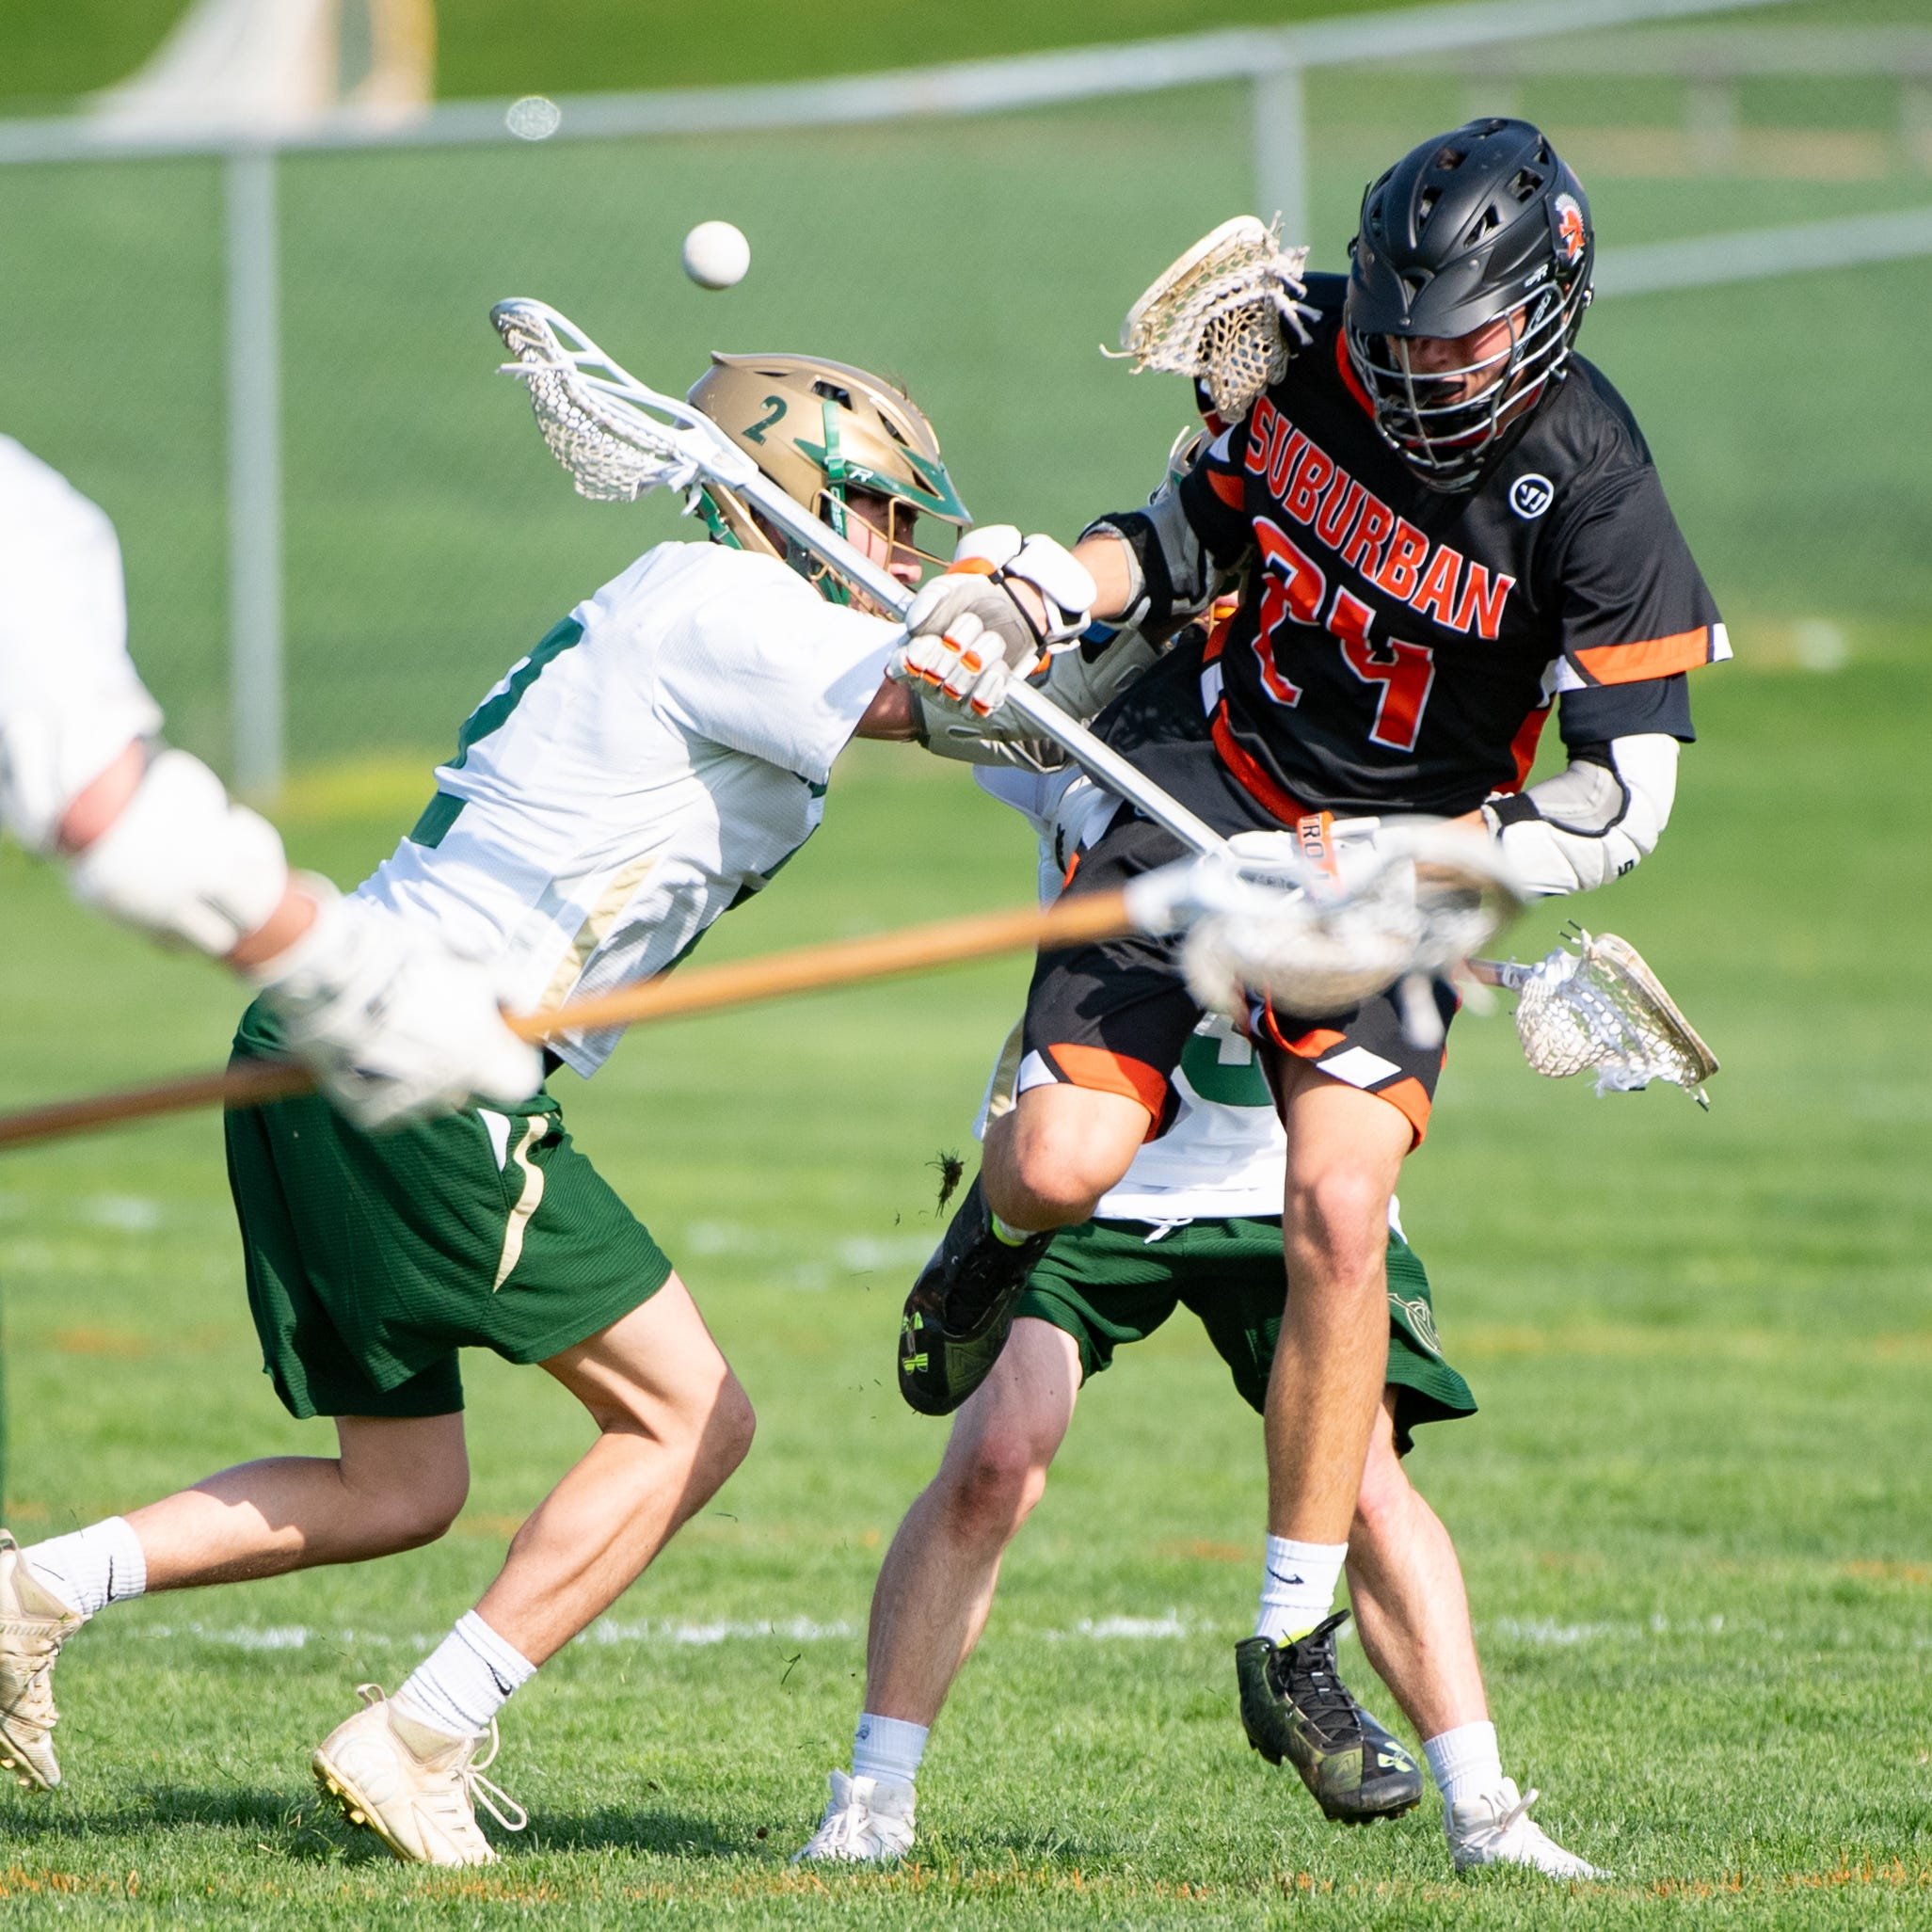 Johnny Wasilewski (24) gets pushed during the boys' lacrosse game between York Catholic and York Suburban, April 18, 2019 at York Catholic High School. The Fighting Irish defeated the Trojans 22 to 3.